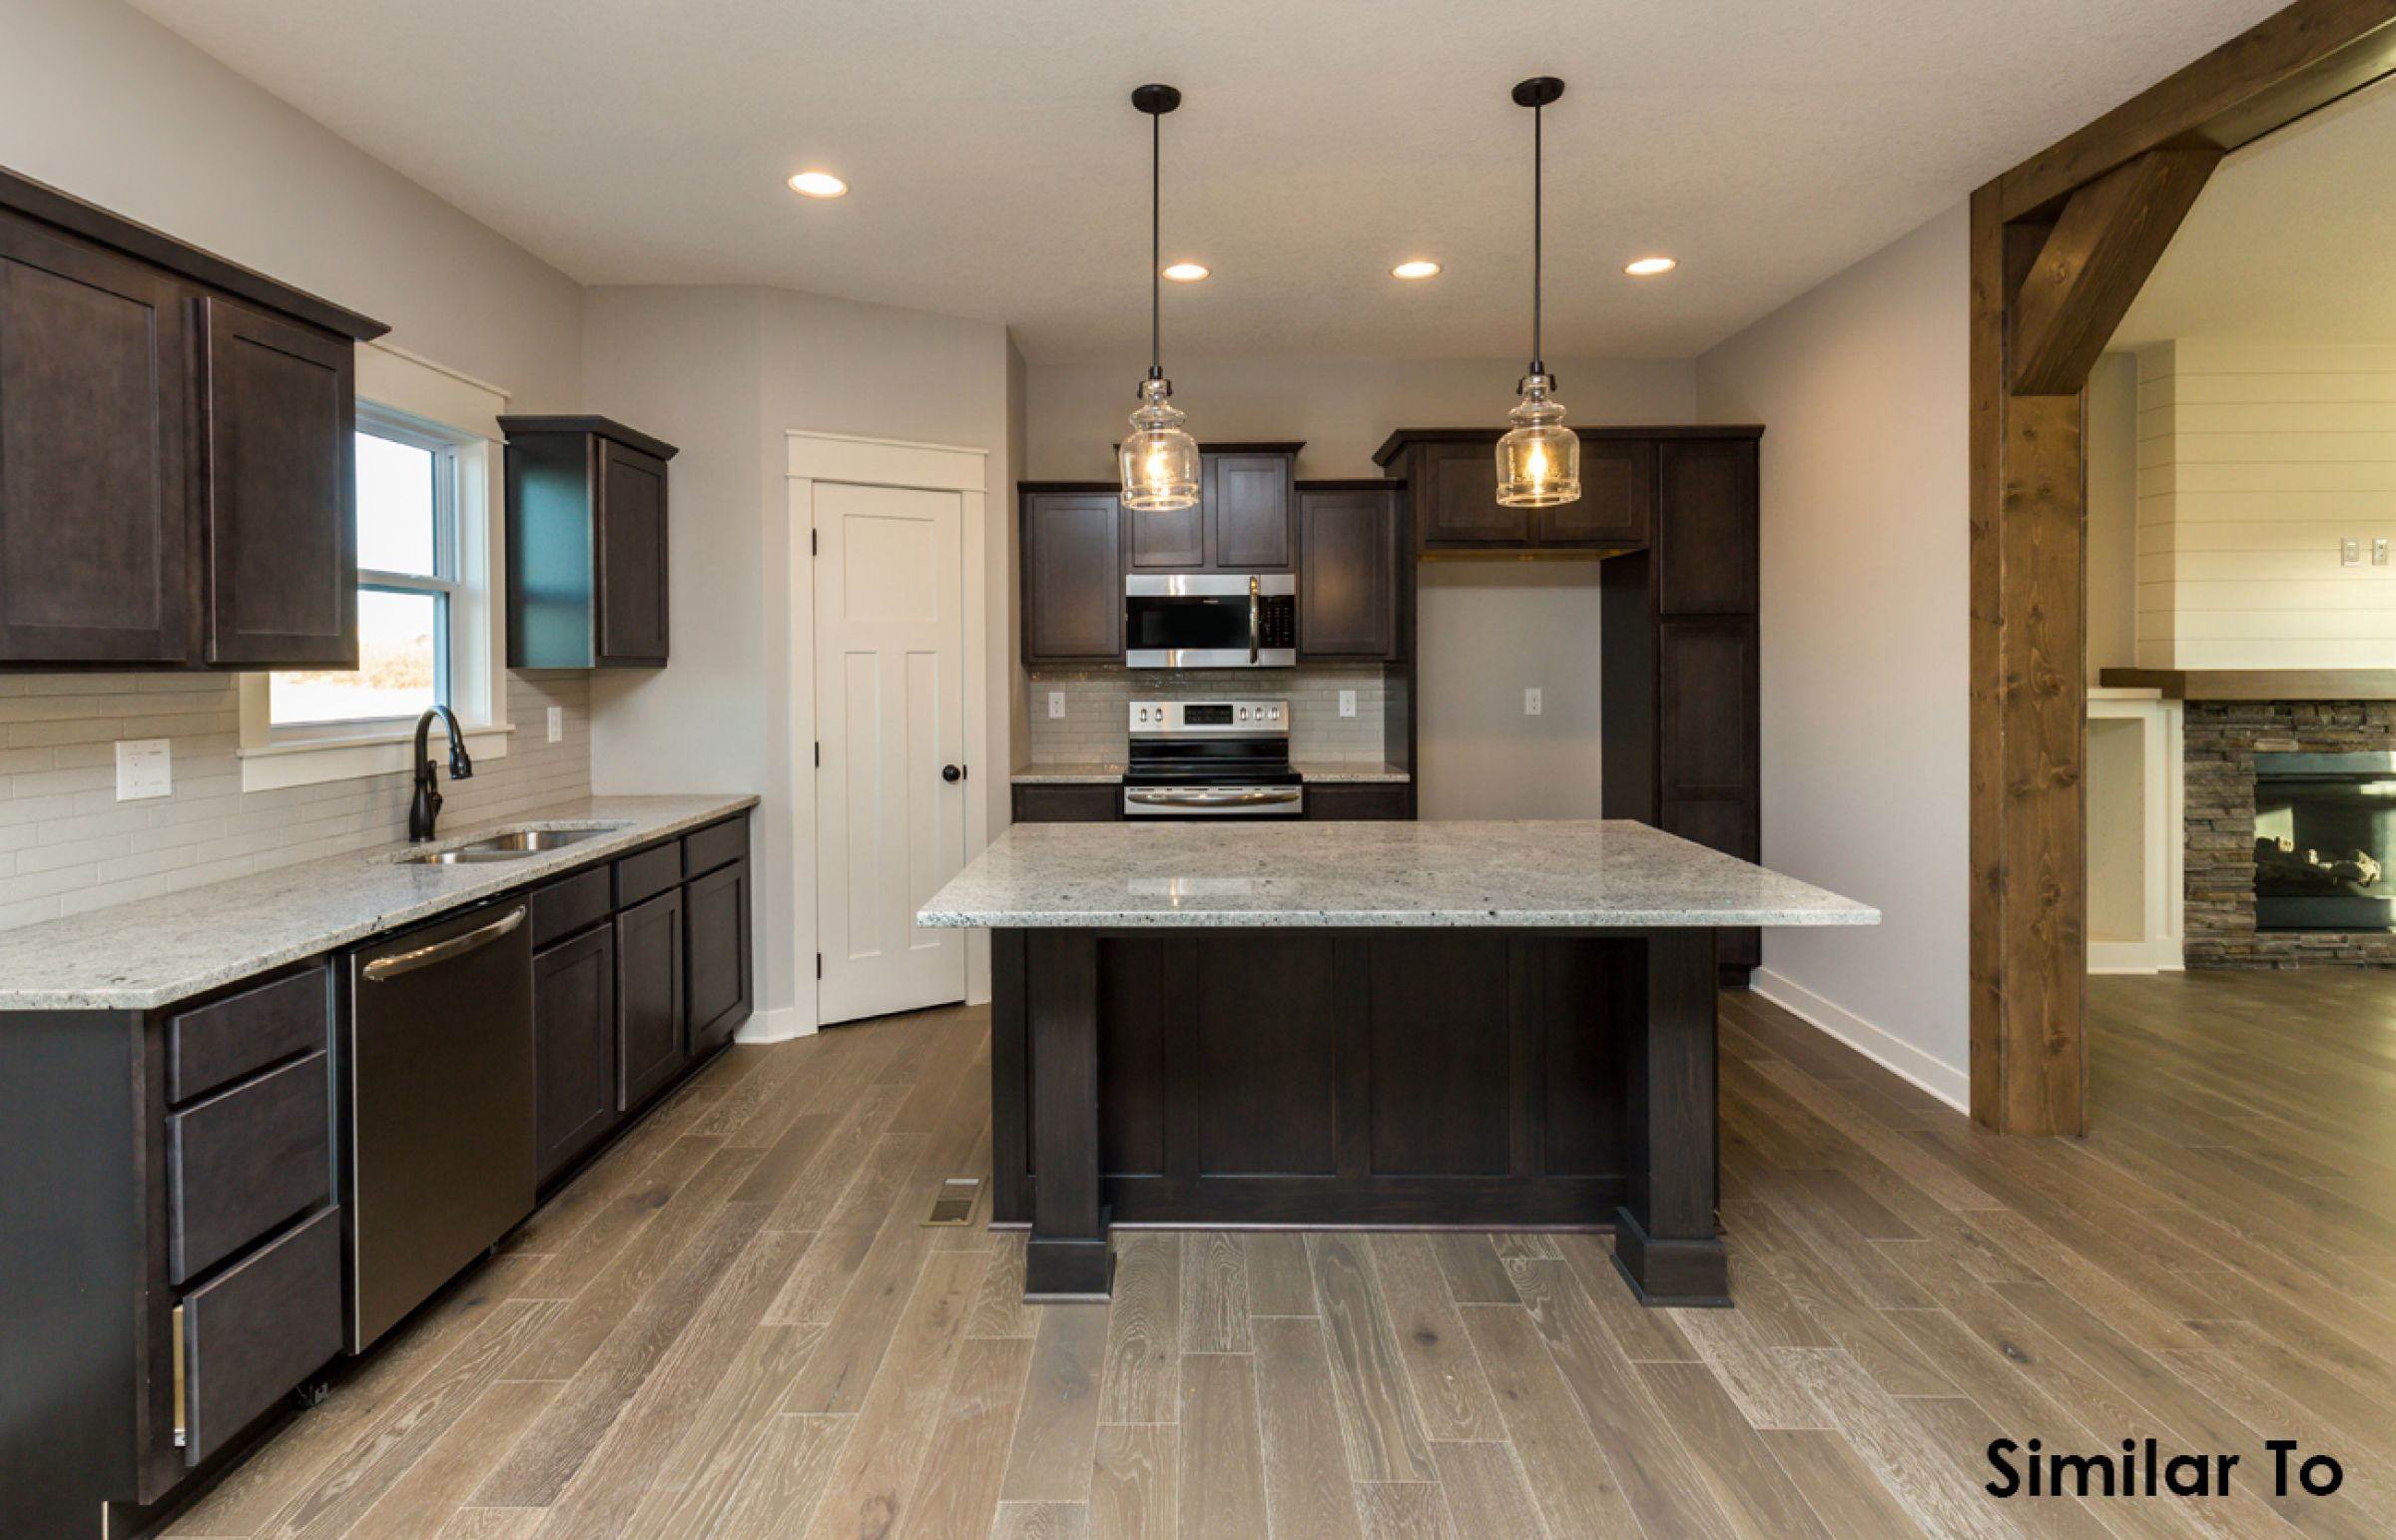 14488-3315-valley-view-drive-west-des-moines-50265-6-2019-04-12-170608.jpg